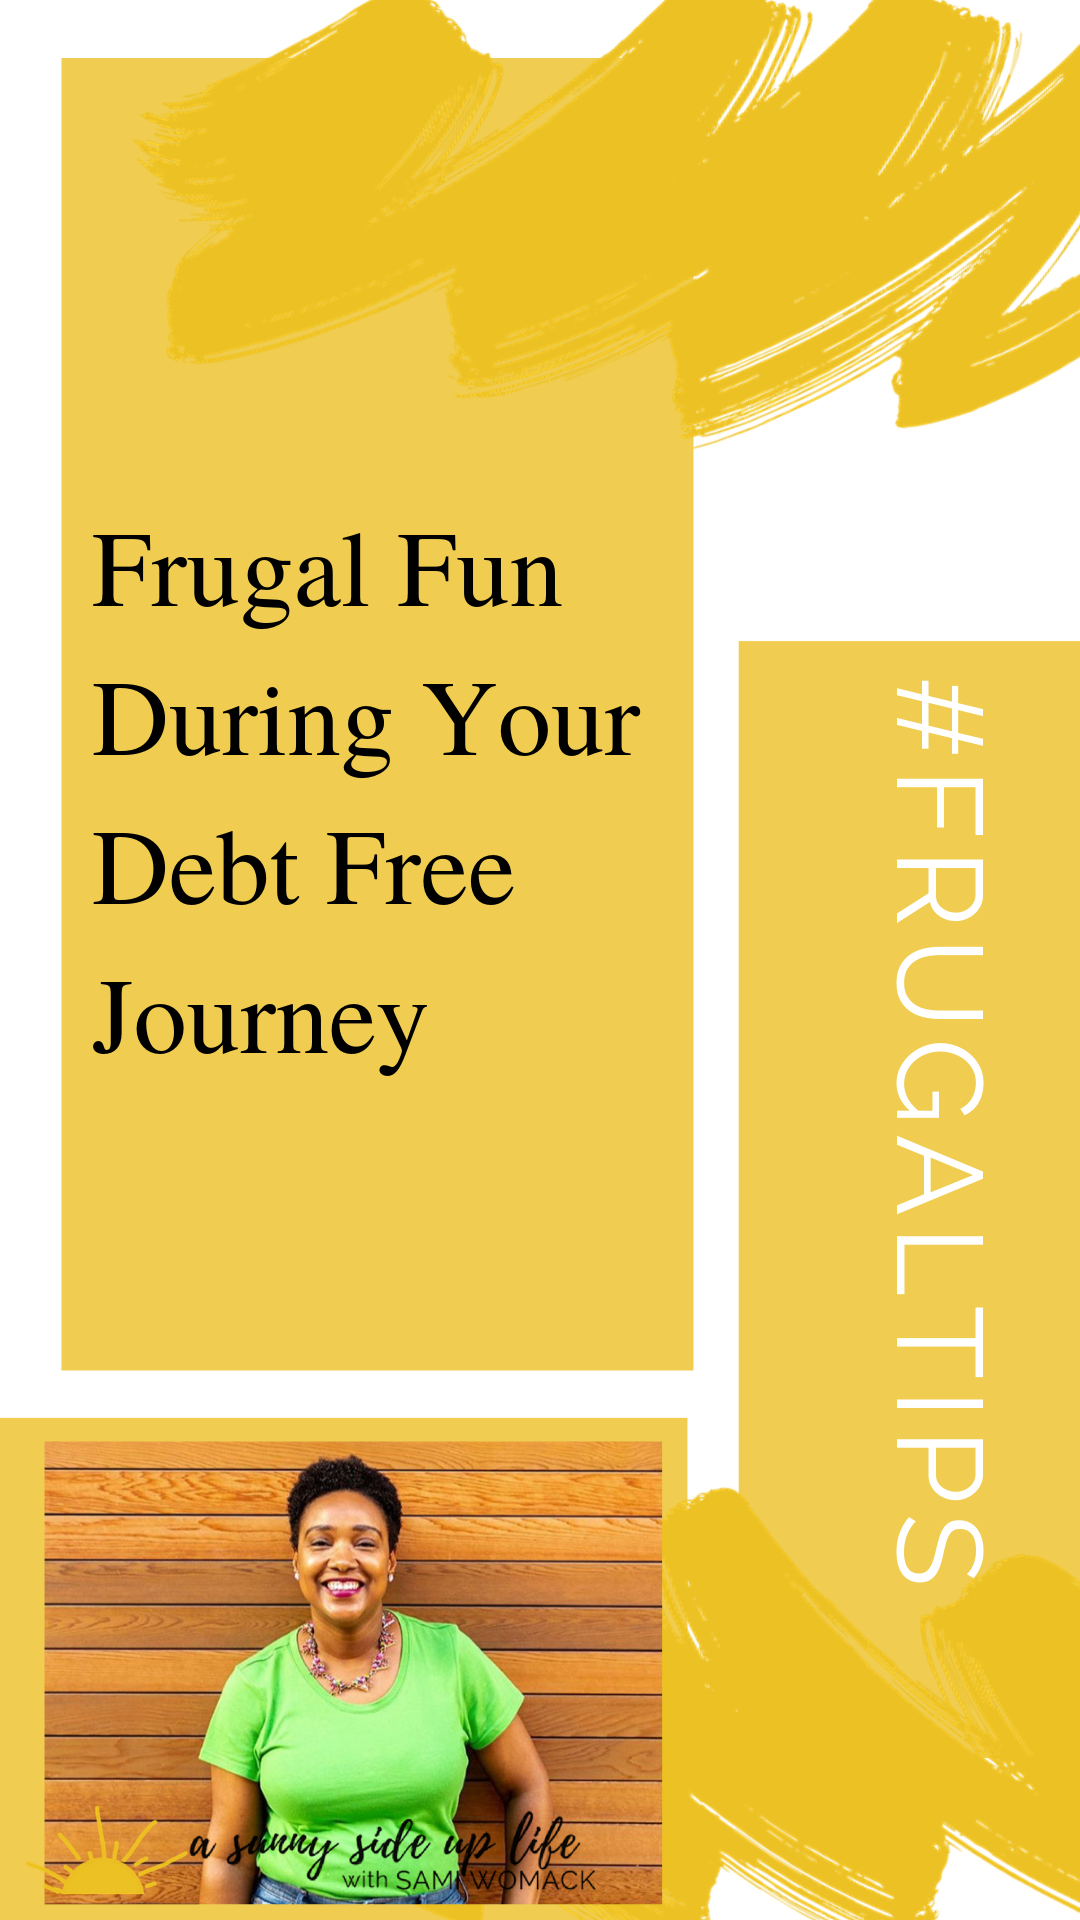 frugal fun | debt free journey | budget friendly tips | money saving hacks | mom life | family | budgeting